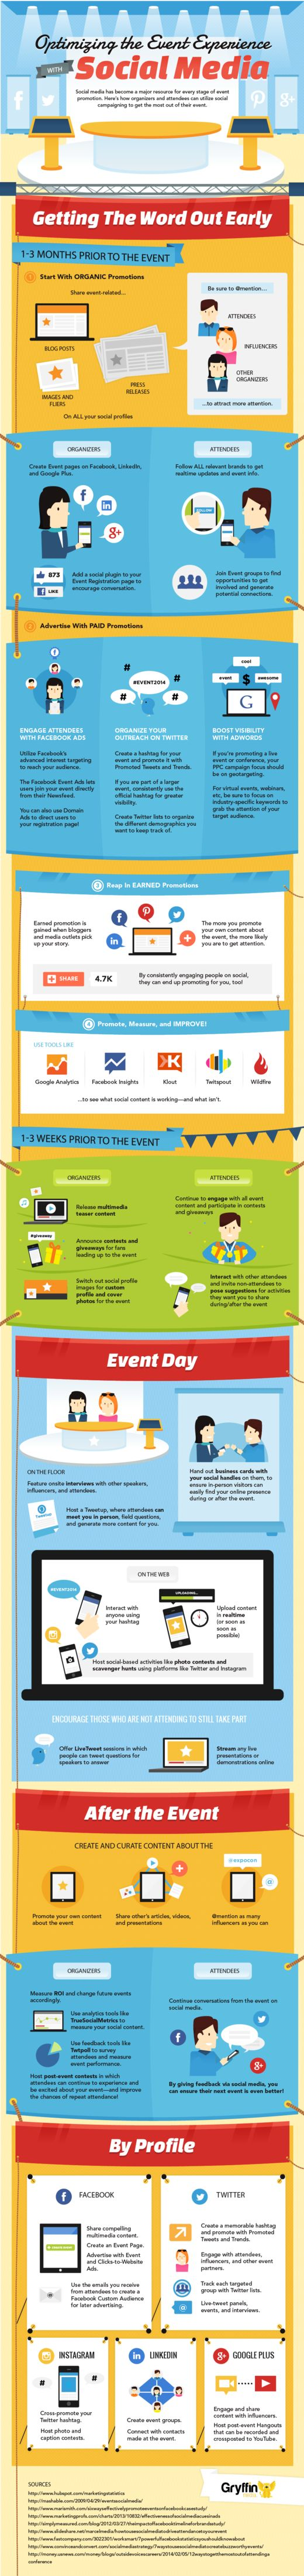 Great infographic with tips on optimizing events with social media. It includes handy timelines to help you plan.